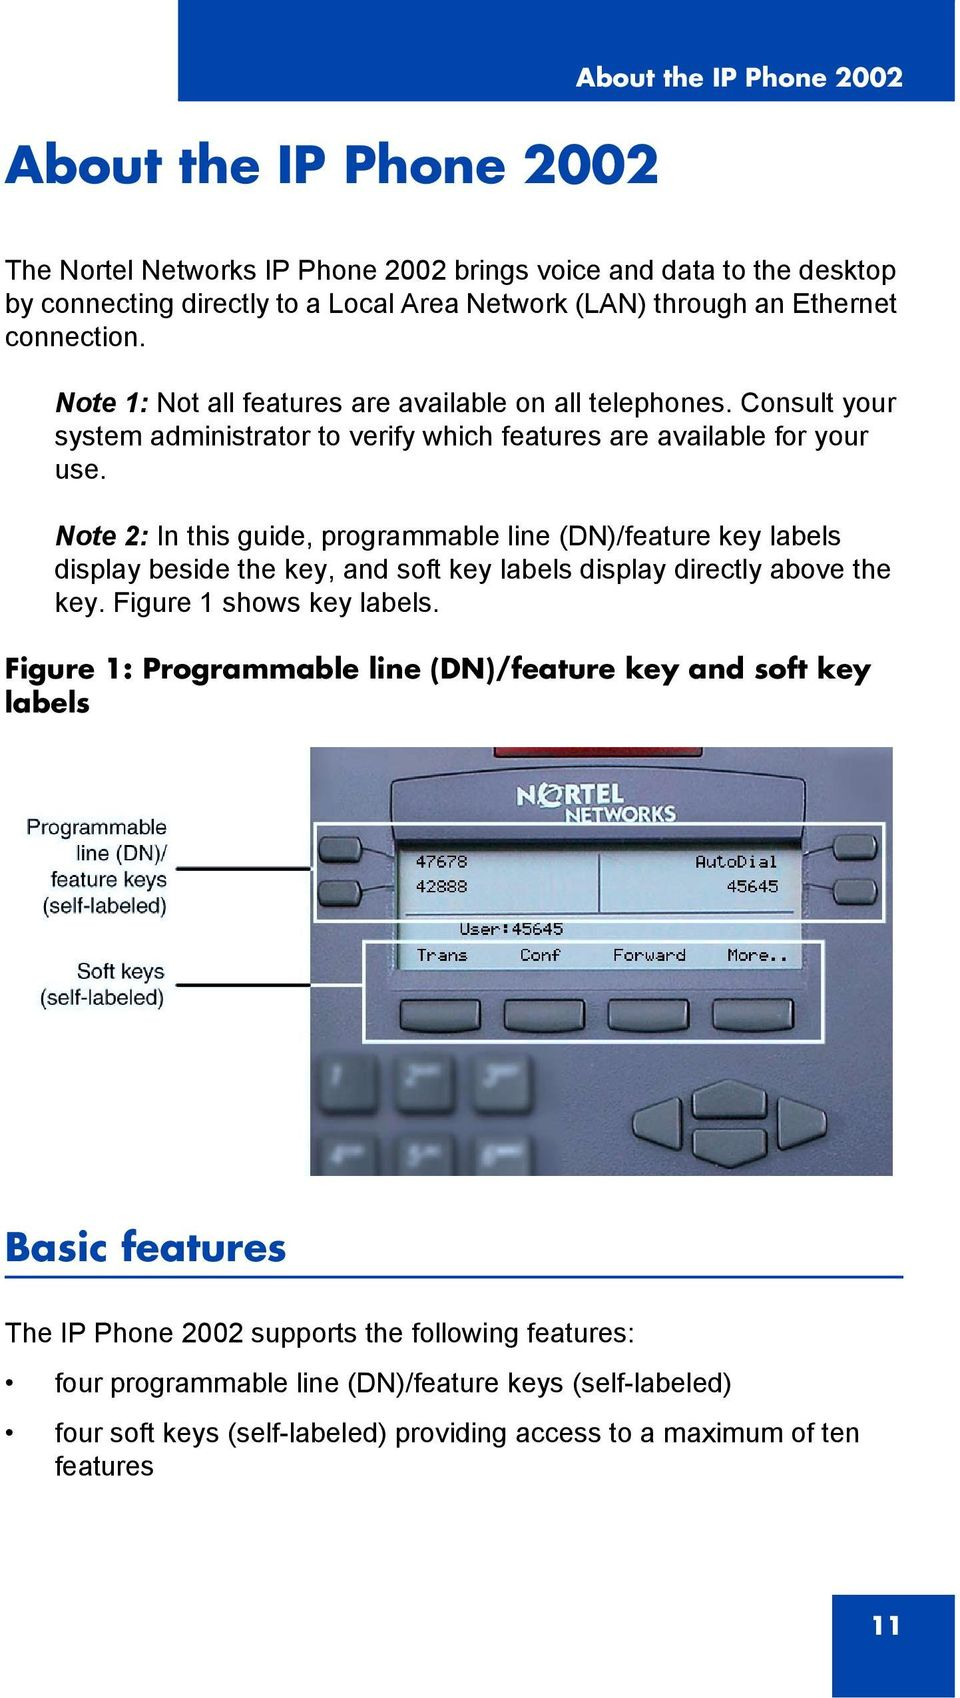 Note 2: In this guide, programmable line (DN)/feature key labels display beside the key, and soft key labels display directly above the key. Figure 1 shows key labels.